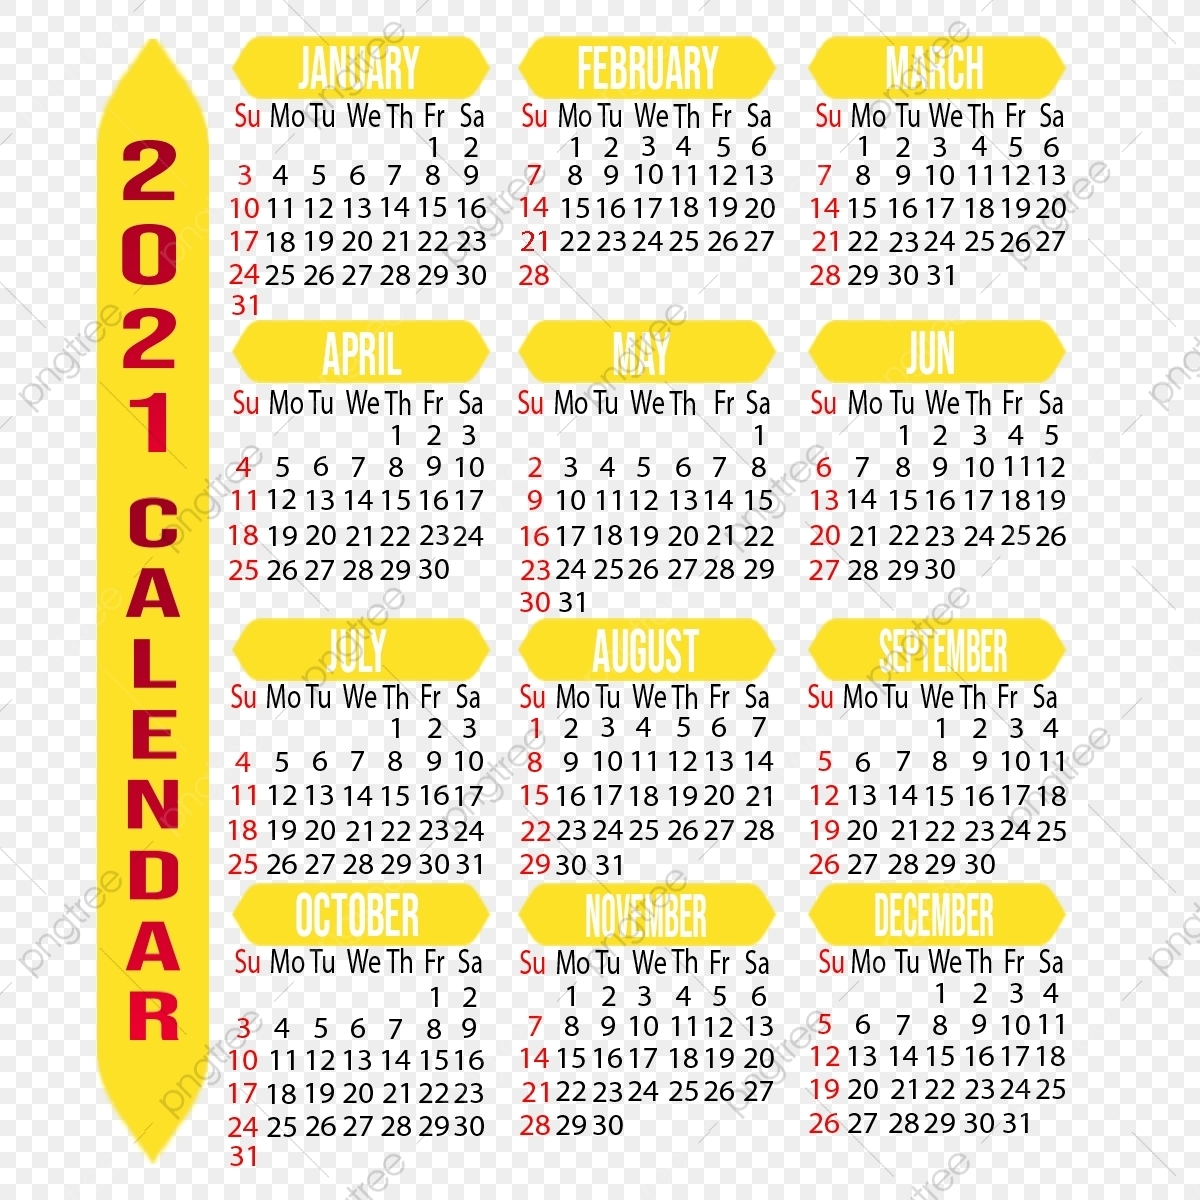 Customizable 2021 Calendar, Year, Month, Week Png